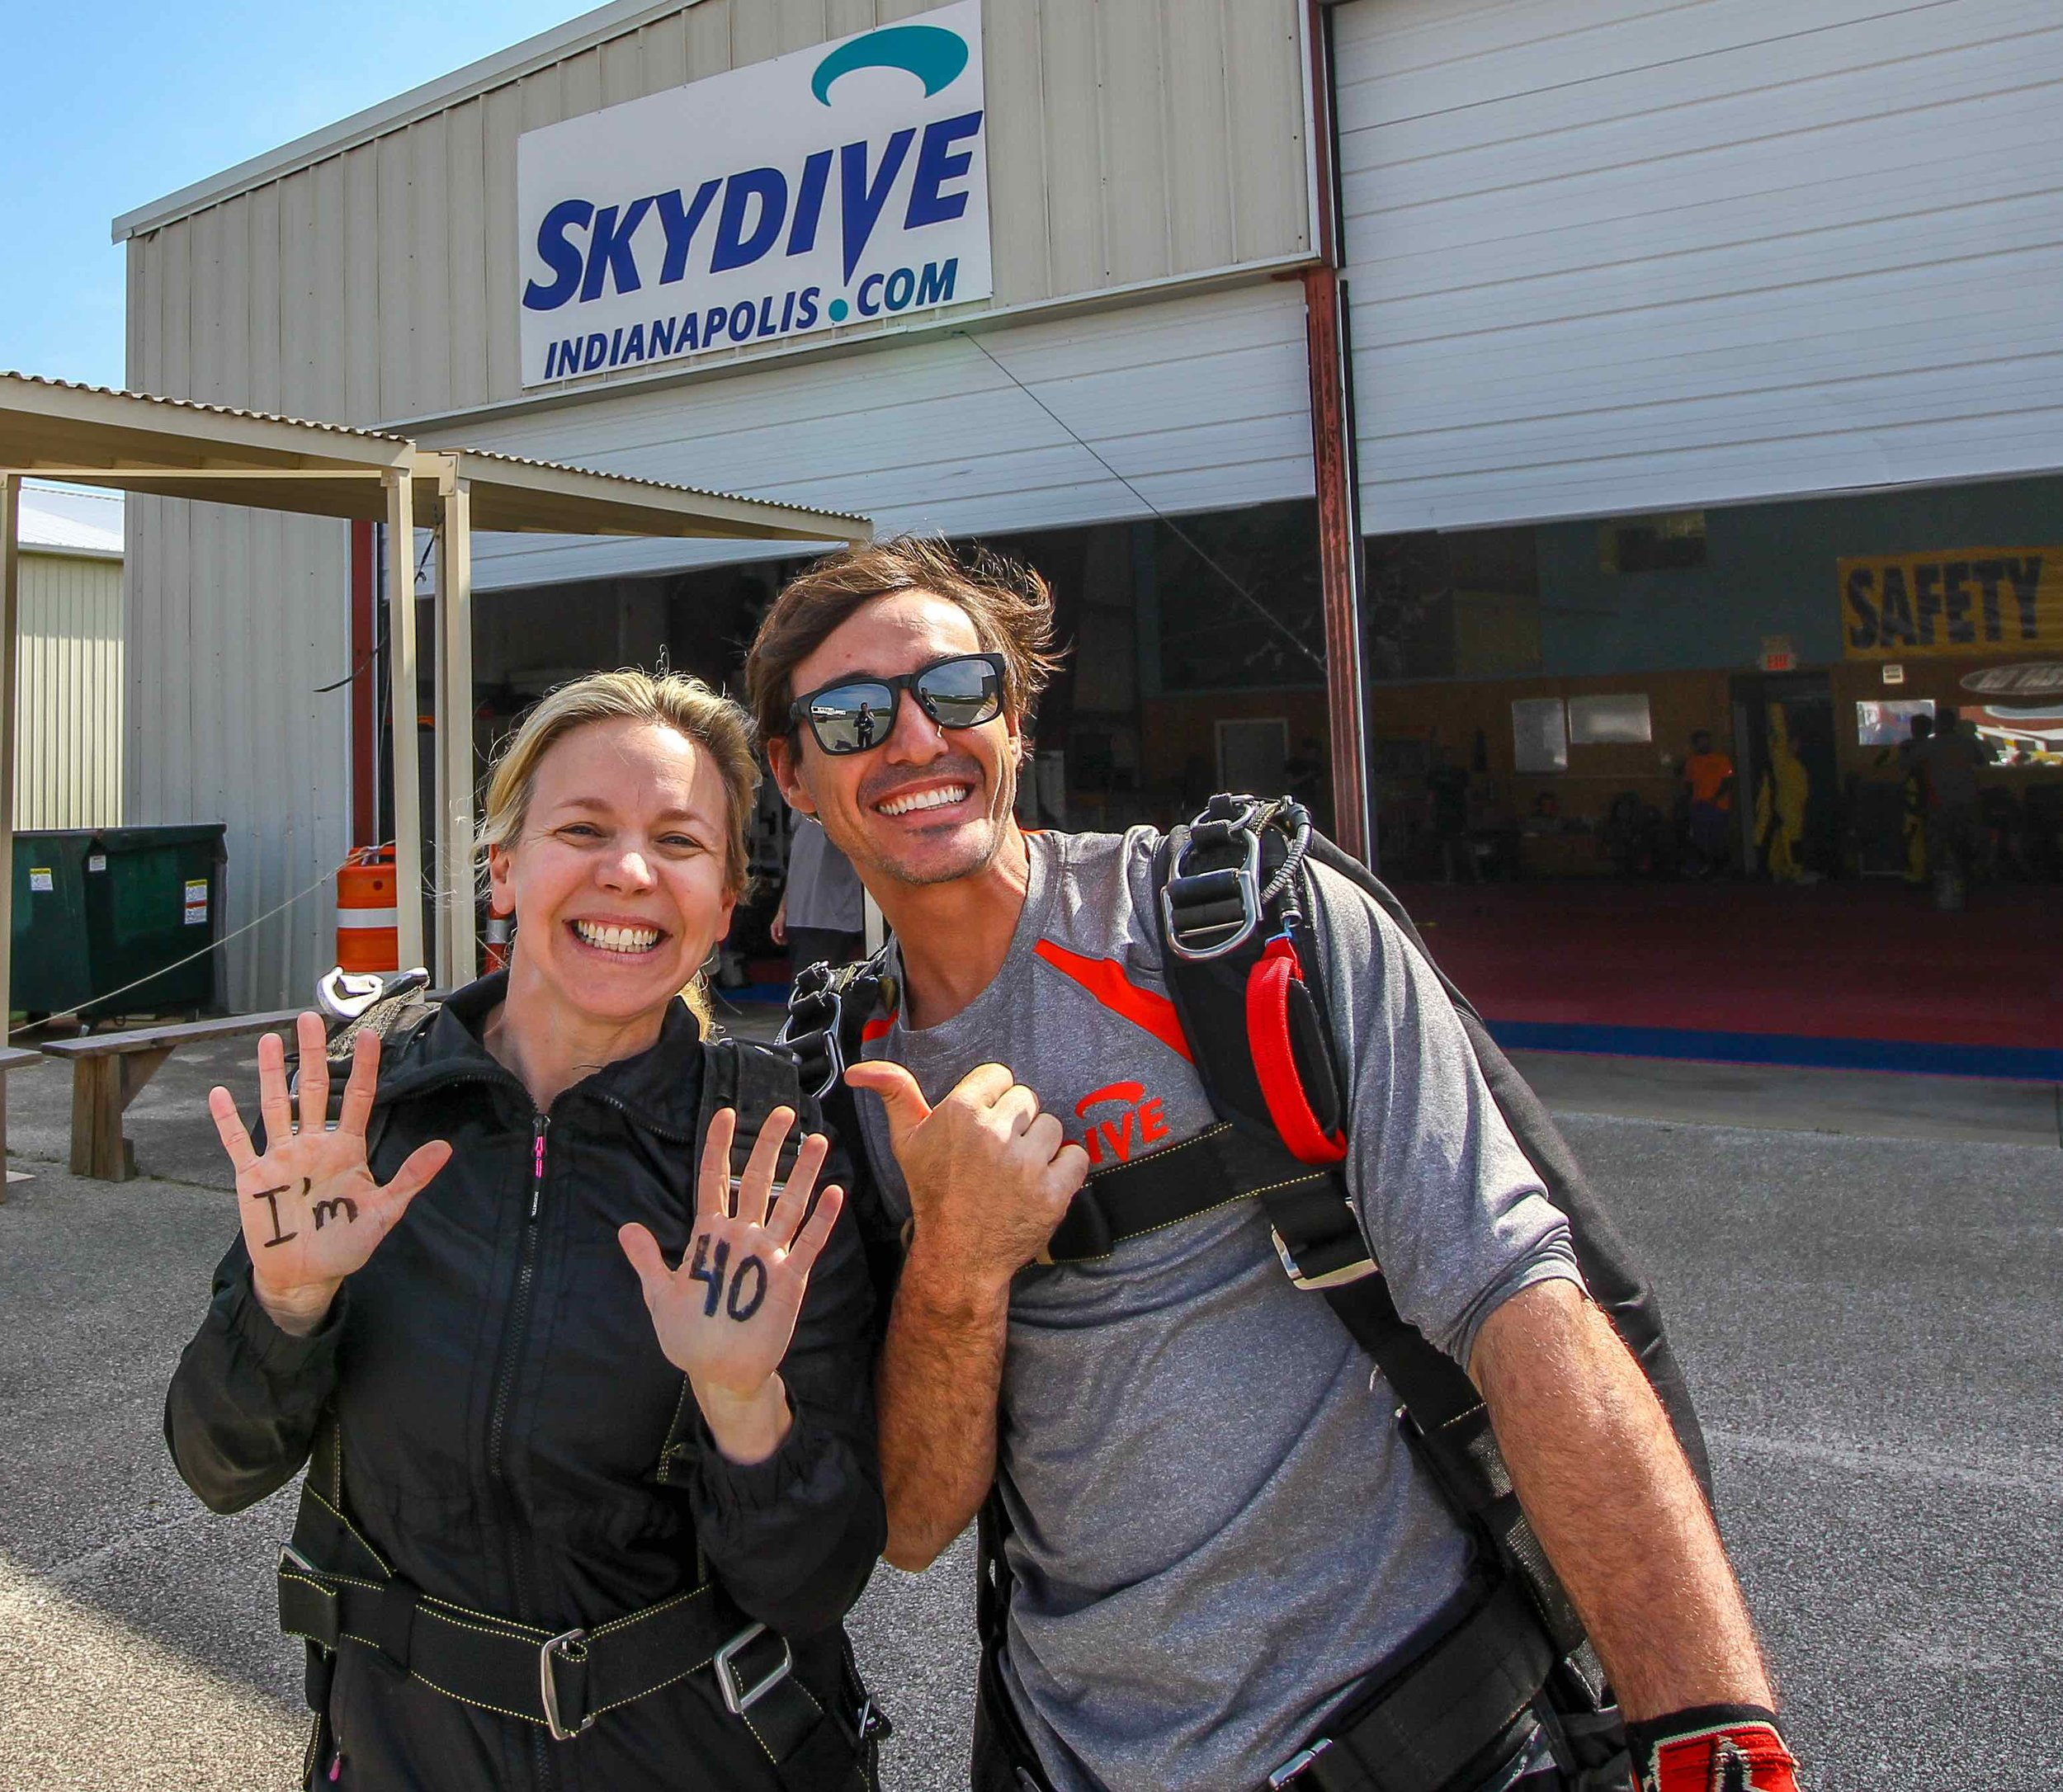 Celebrate with a skydive